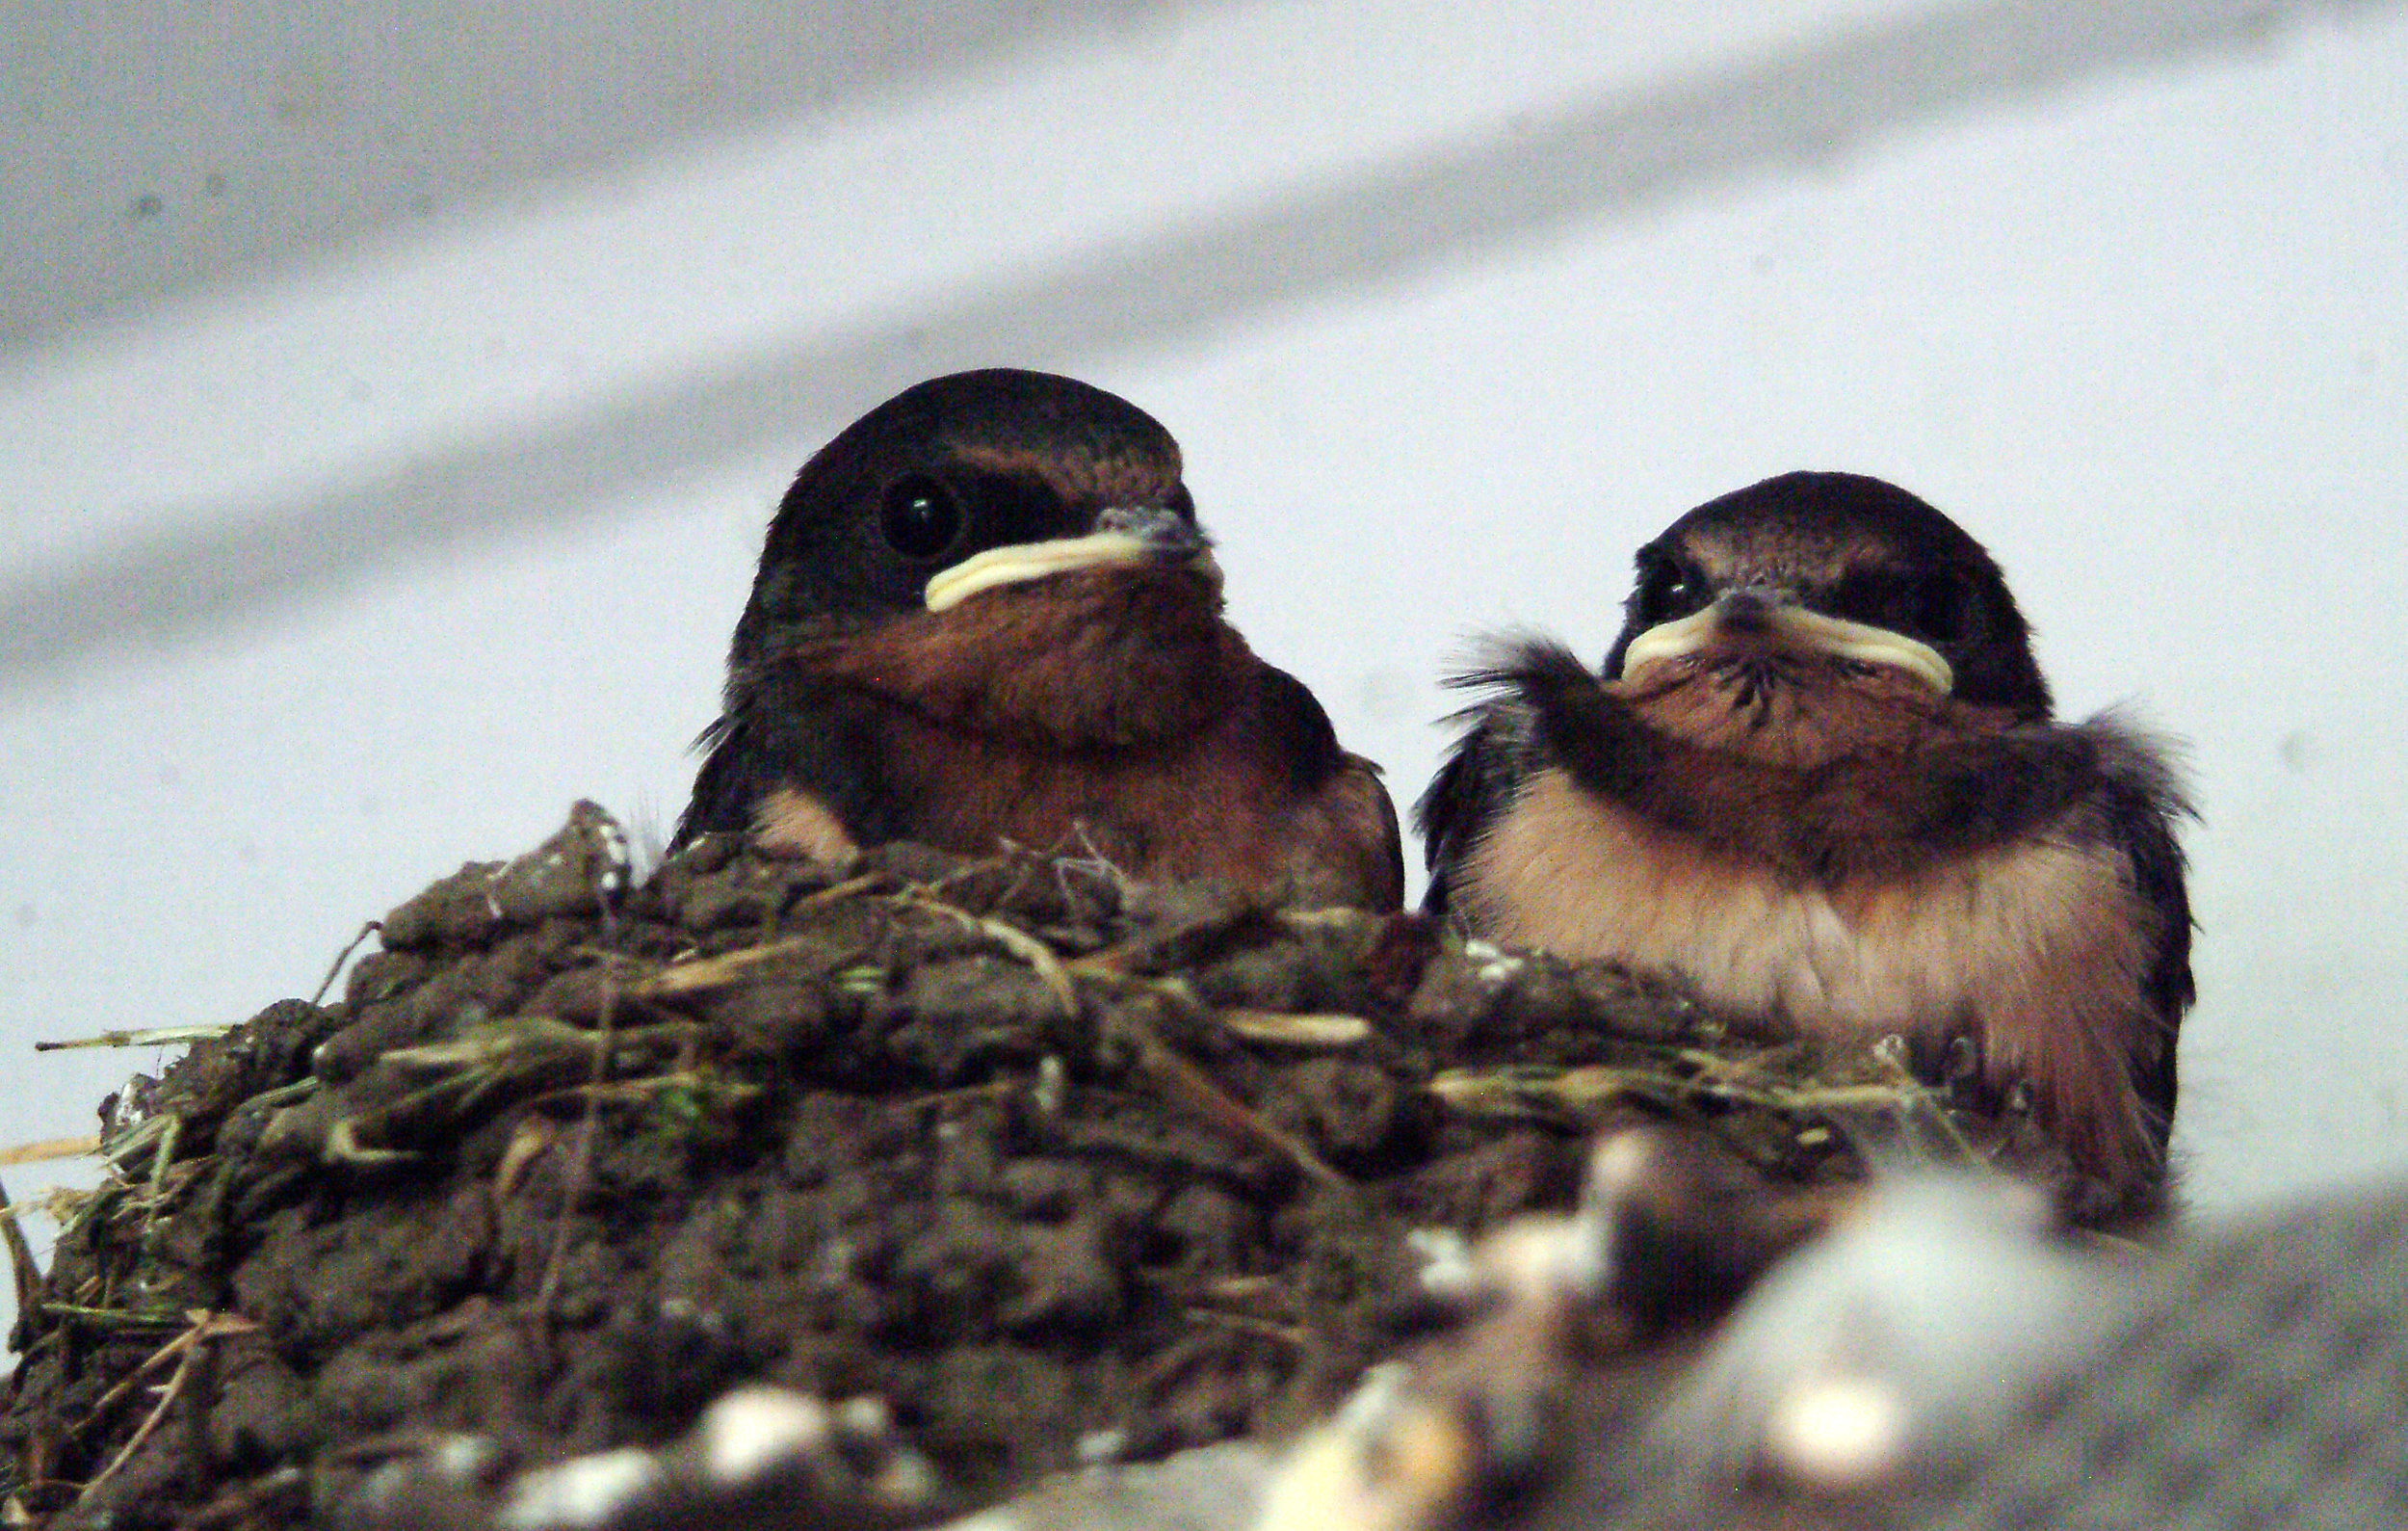 Barn swallow chicks, photo by Whitney H